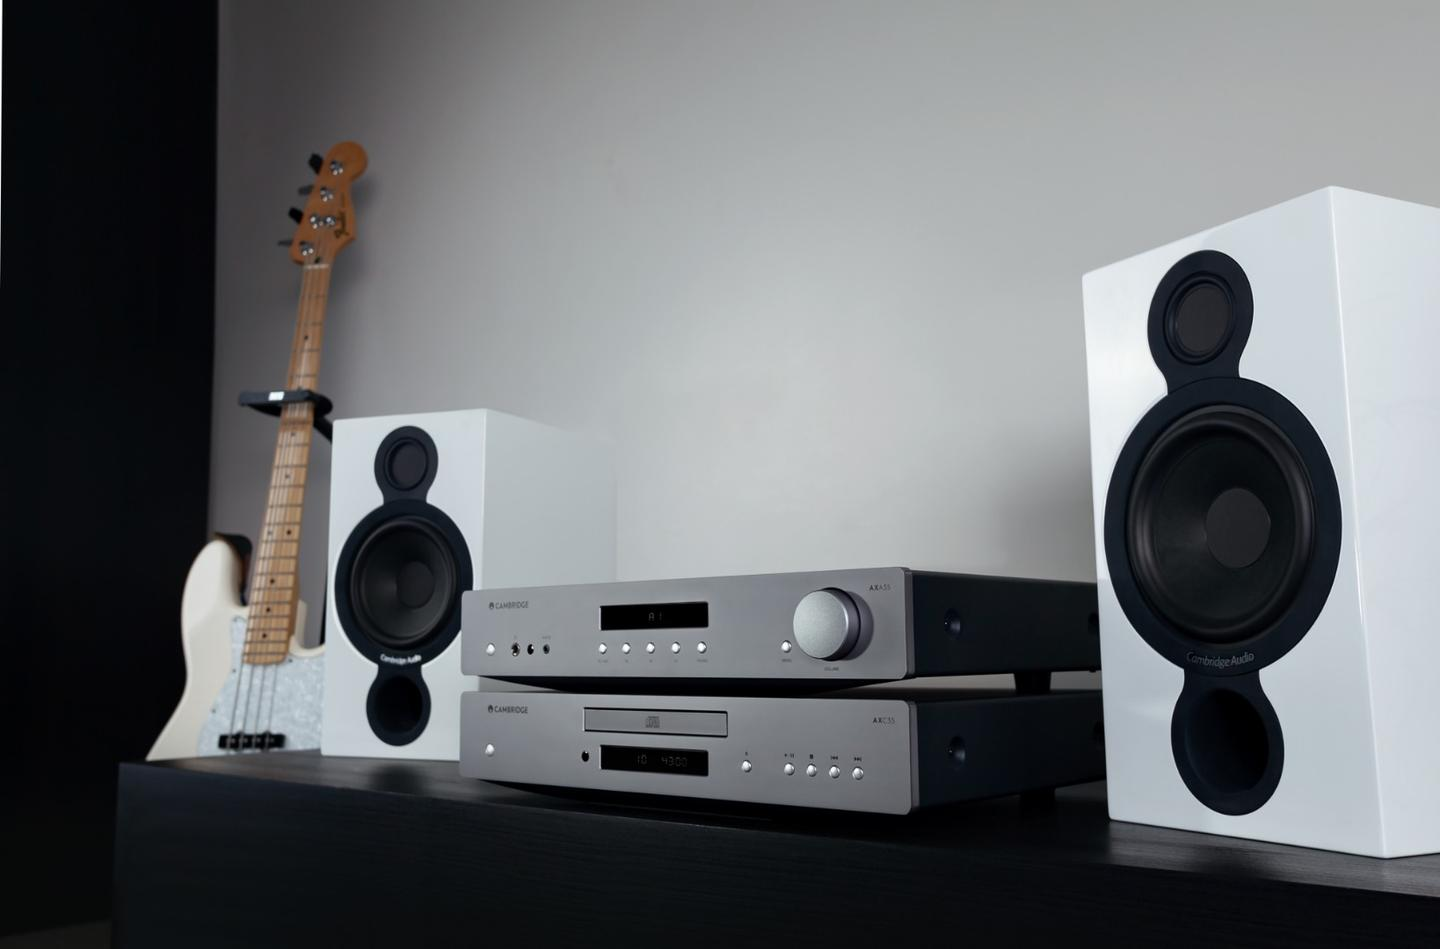 The Cambridge Audio AX series comprises a CD player, an integrated amp and two stereo receivers